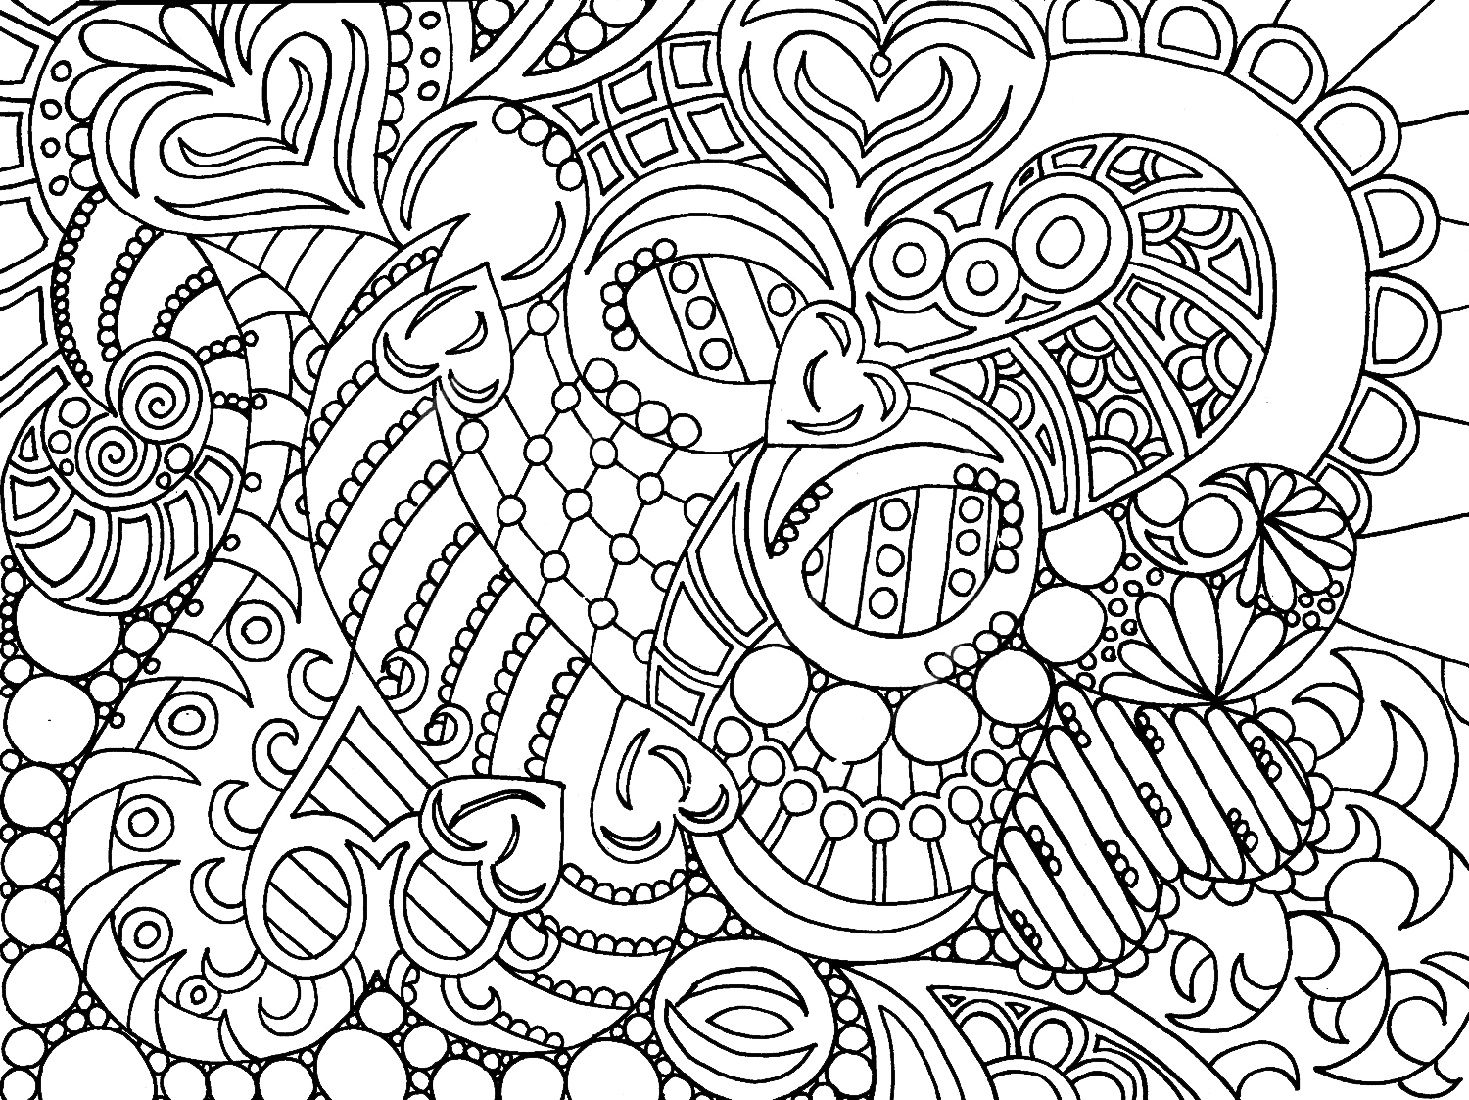 coloring pages for teens printable printable coloring pages for teen girls at getcolorings for pages teens printable coloring